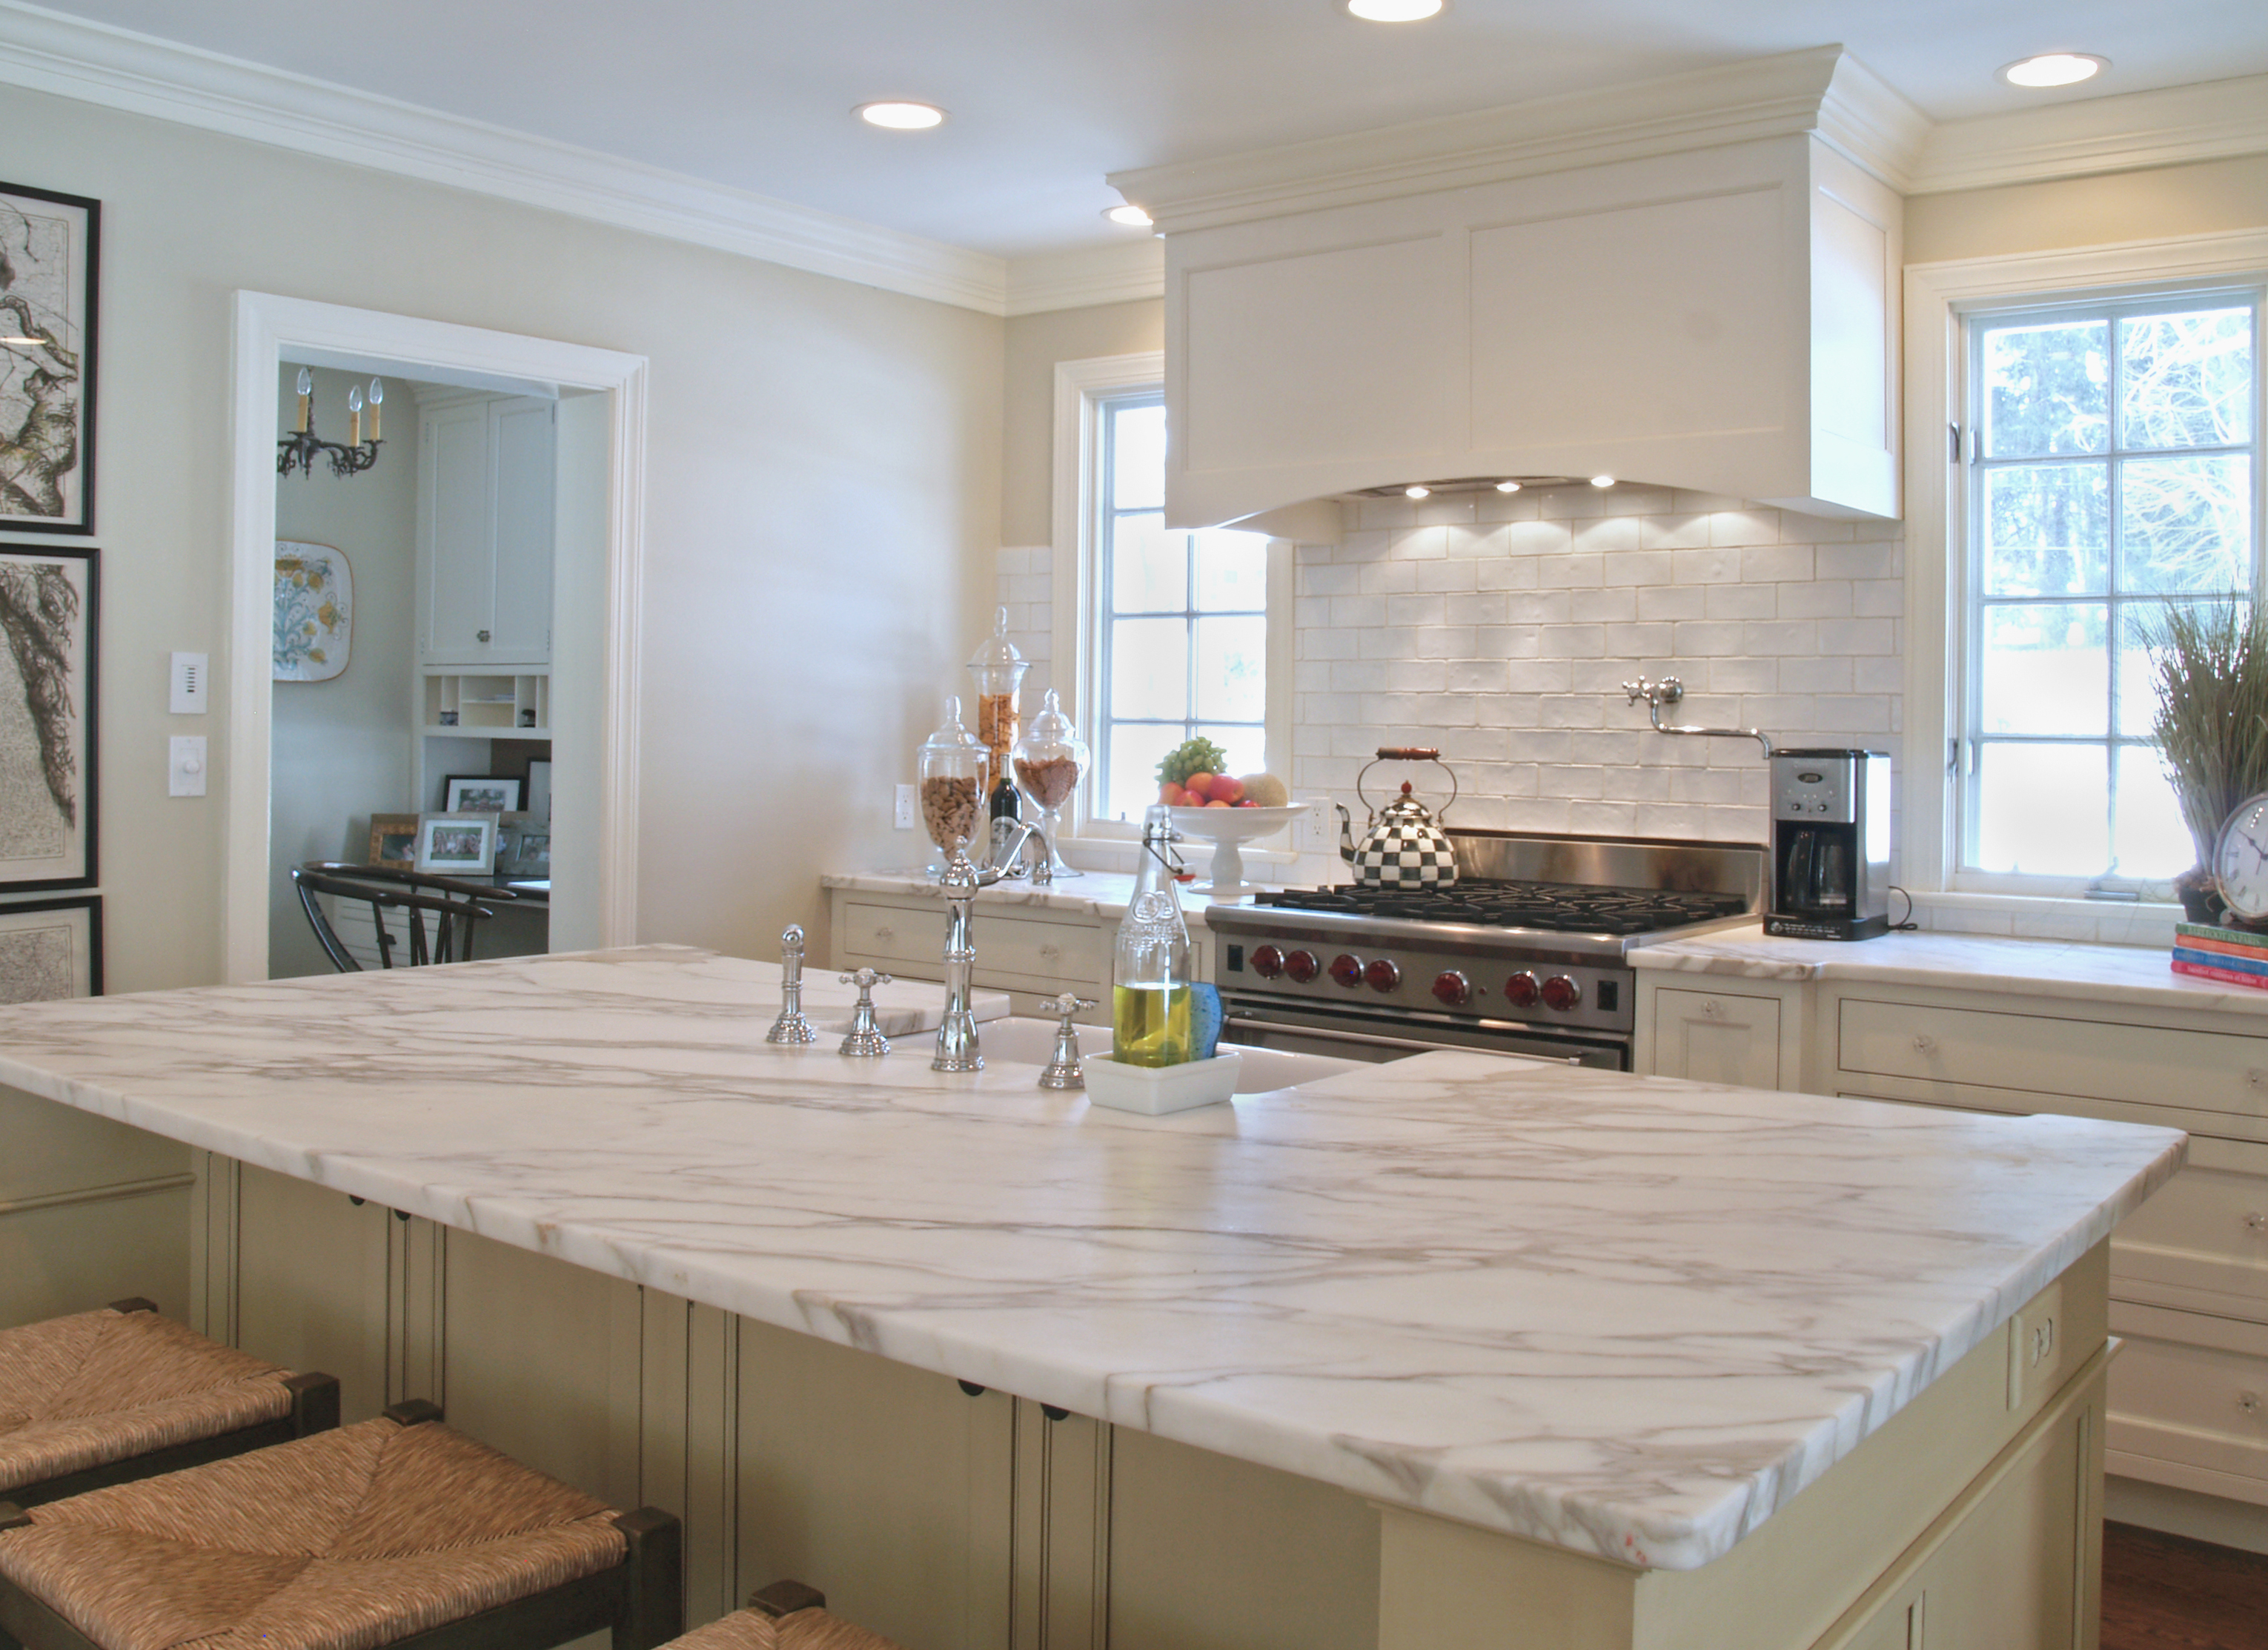 of installed entity organize countertops cost kitchen to granite how quartz pictures